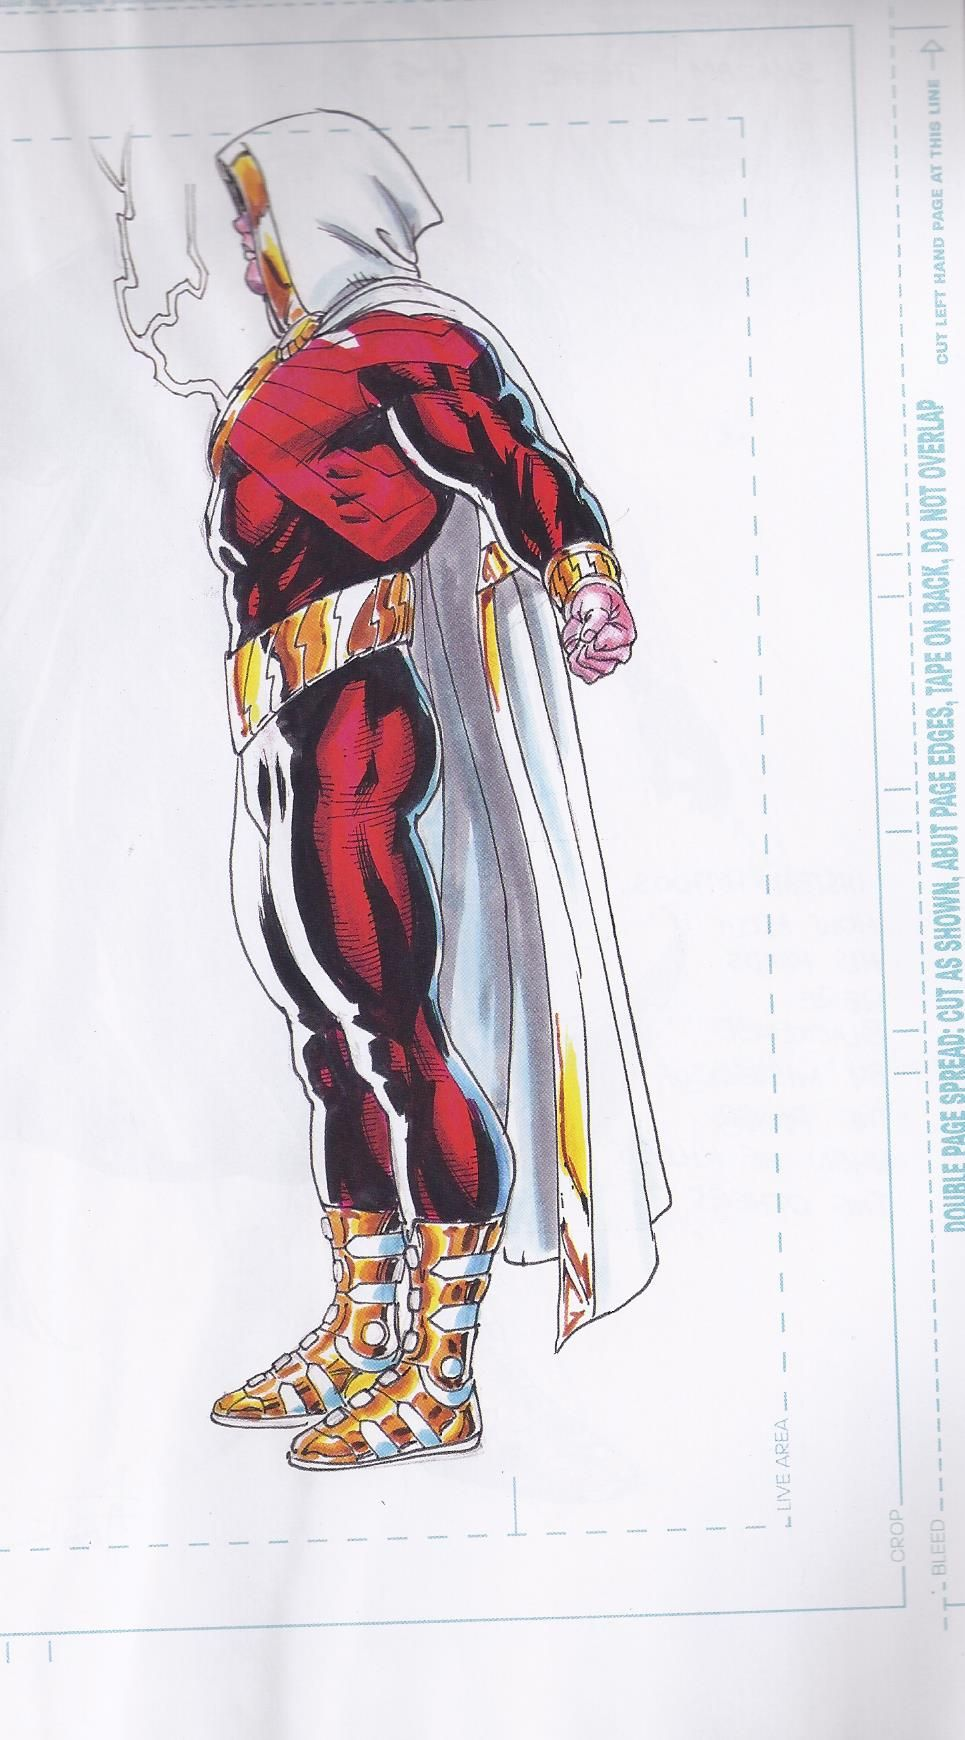 Shazam DC New 52 Gary Frank Character Designs art 3 | Comic Images ...